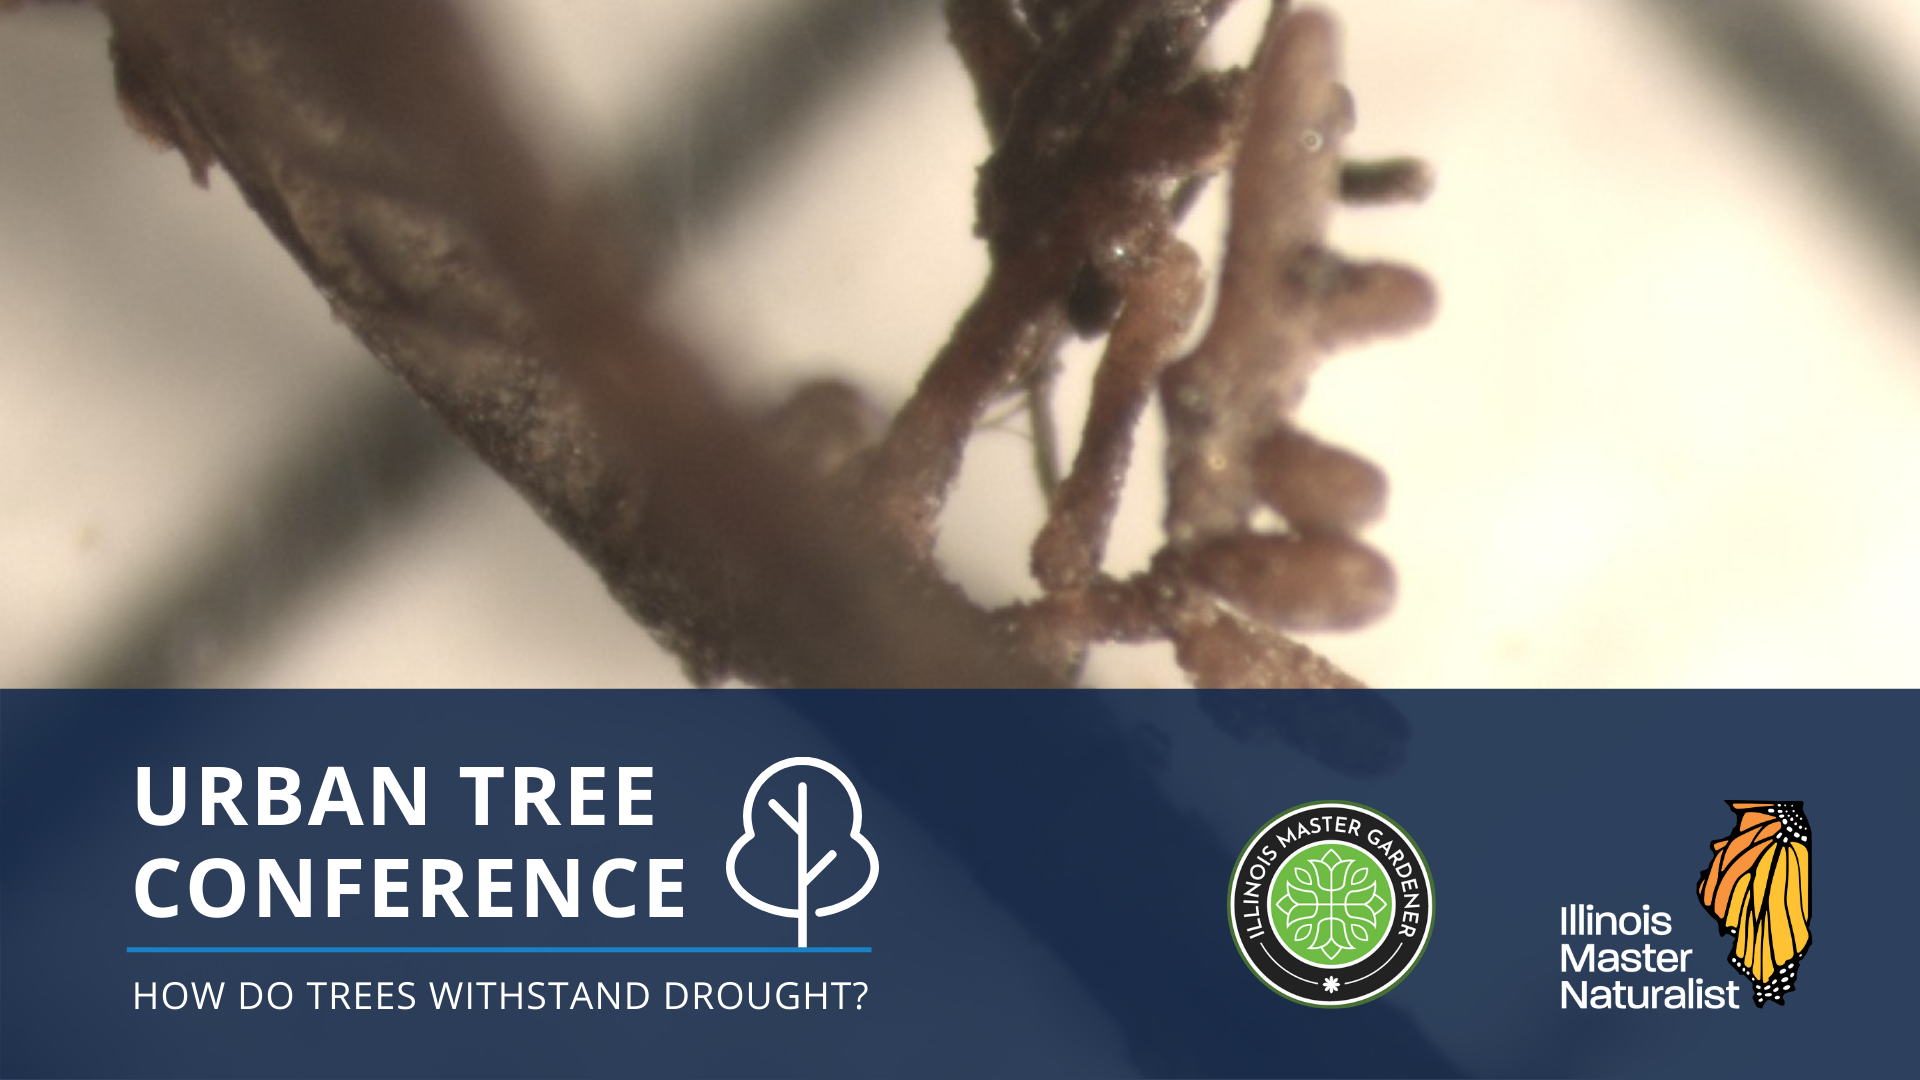 Urban Tree Conference: How do trees withstand drought?